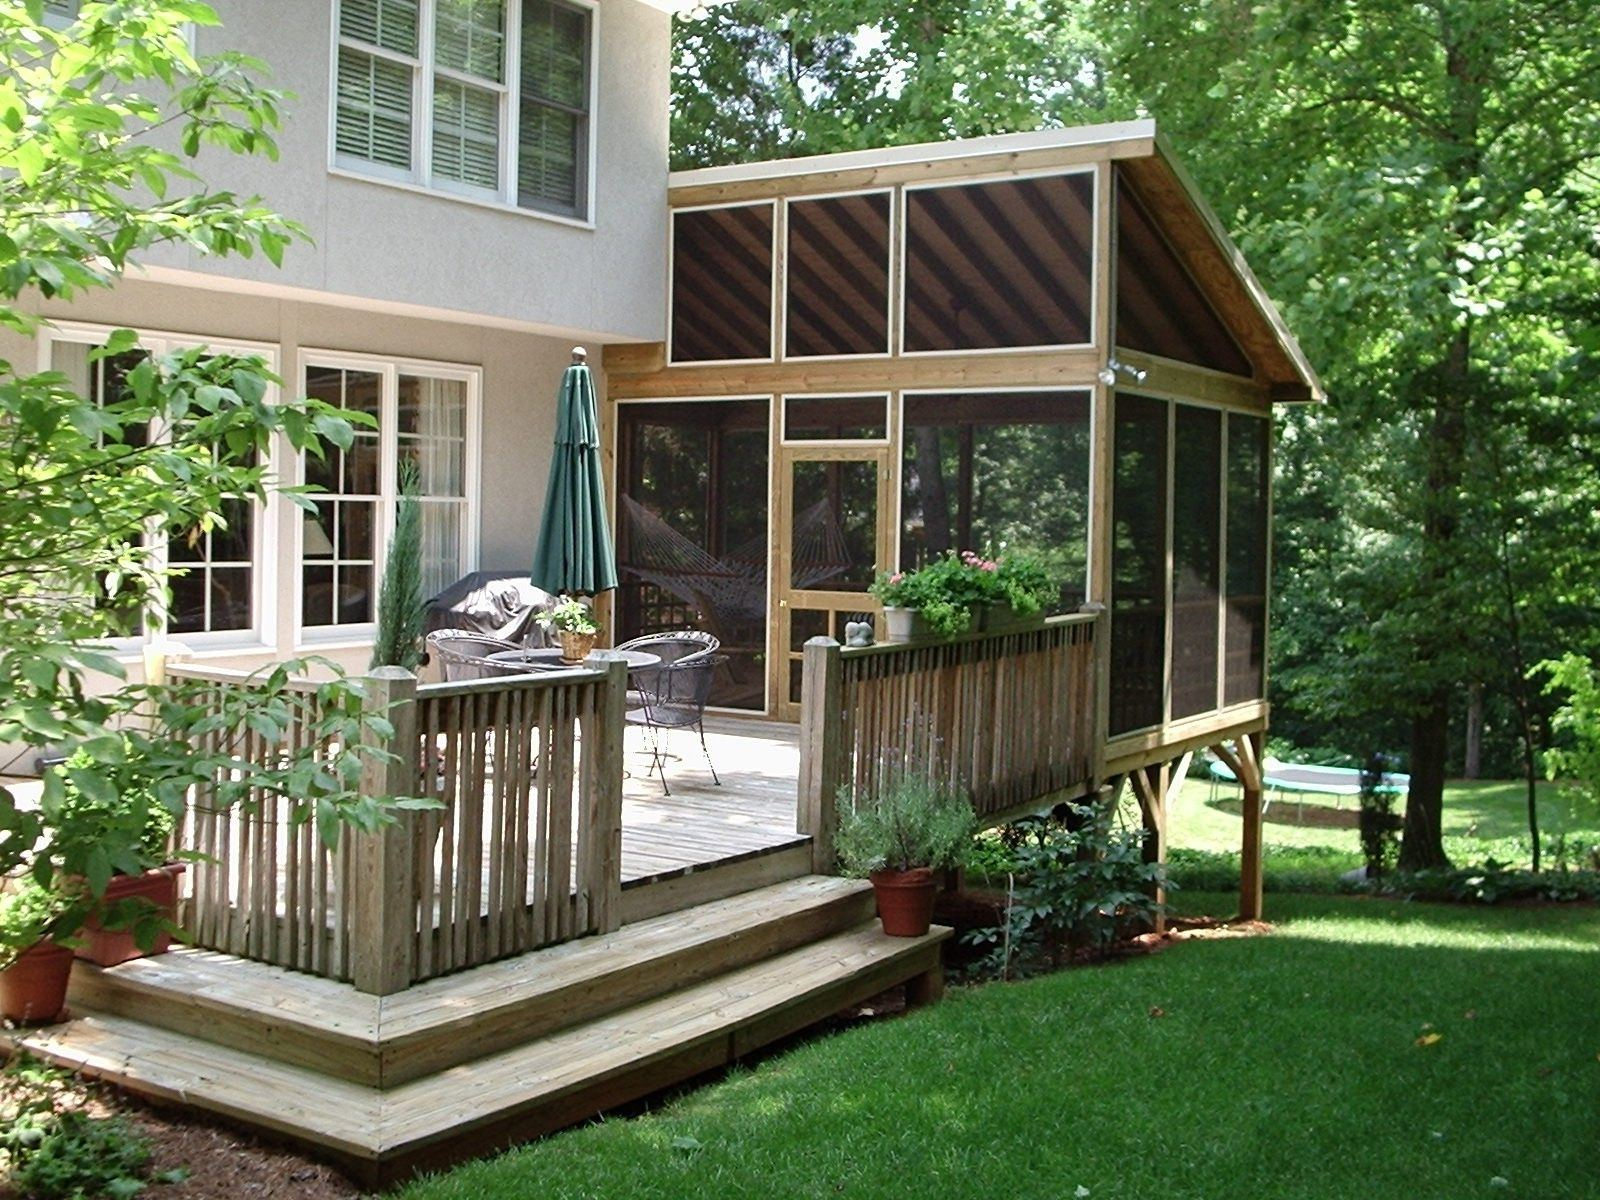 low deck ideas designs ground level wood house plans small garden platform  luxury really like the